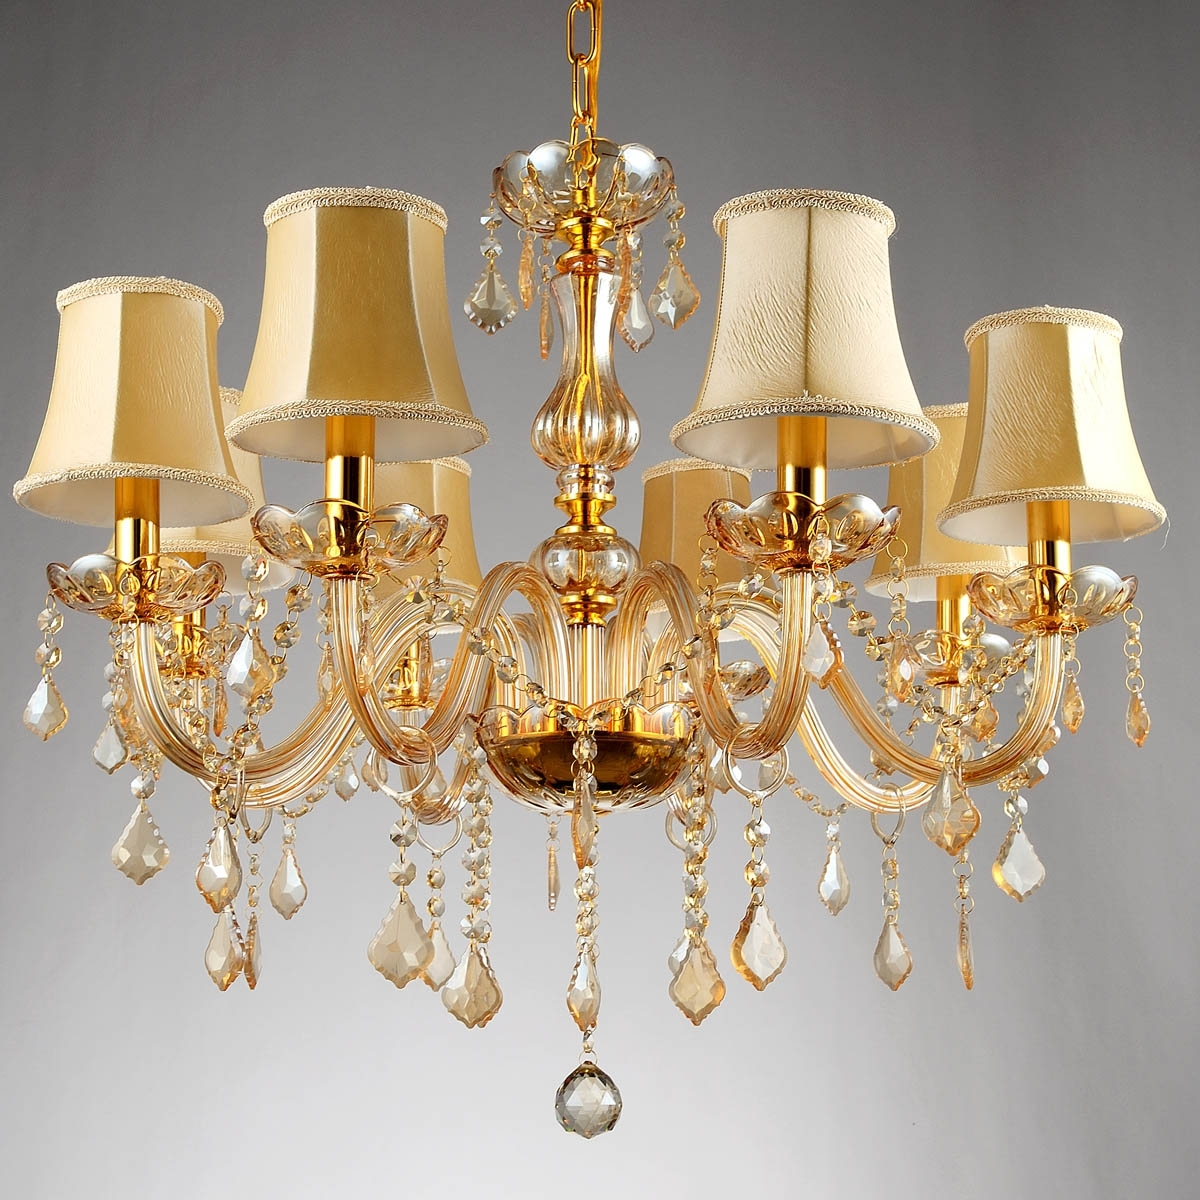 Famous Free Ship 6/8 Arms Fashion Crystal Chandelier Lighting Bedroom With Regard To Crystal Gold Chandeliers (View 9 of 20)